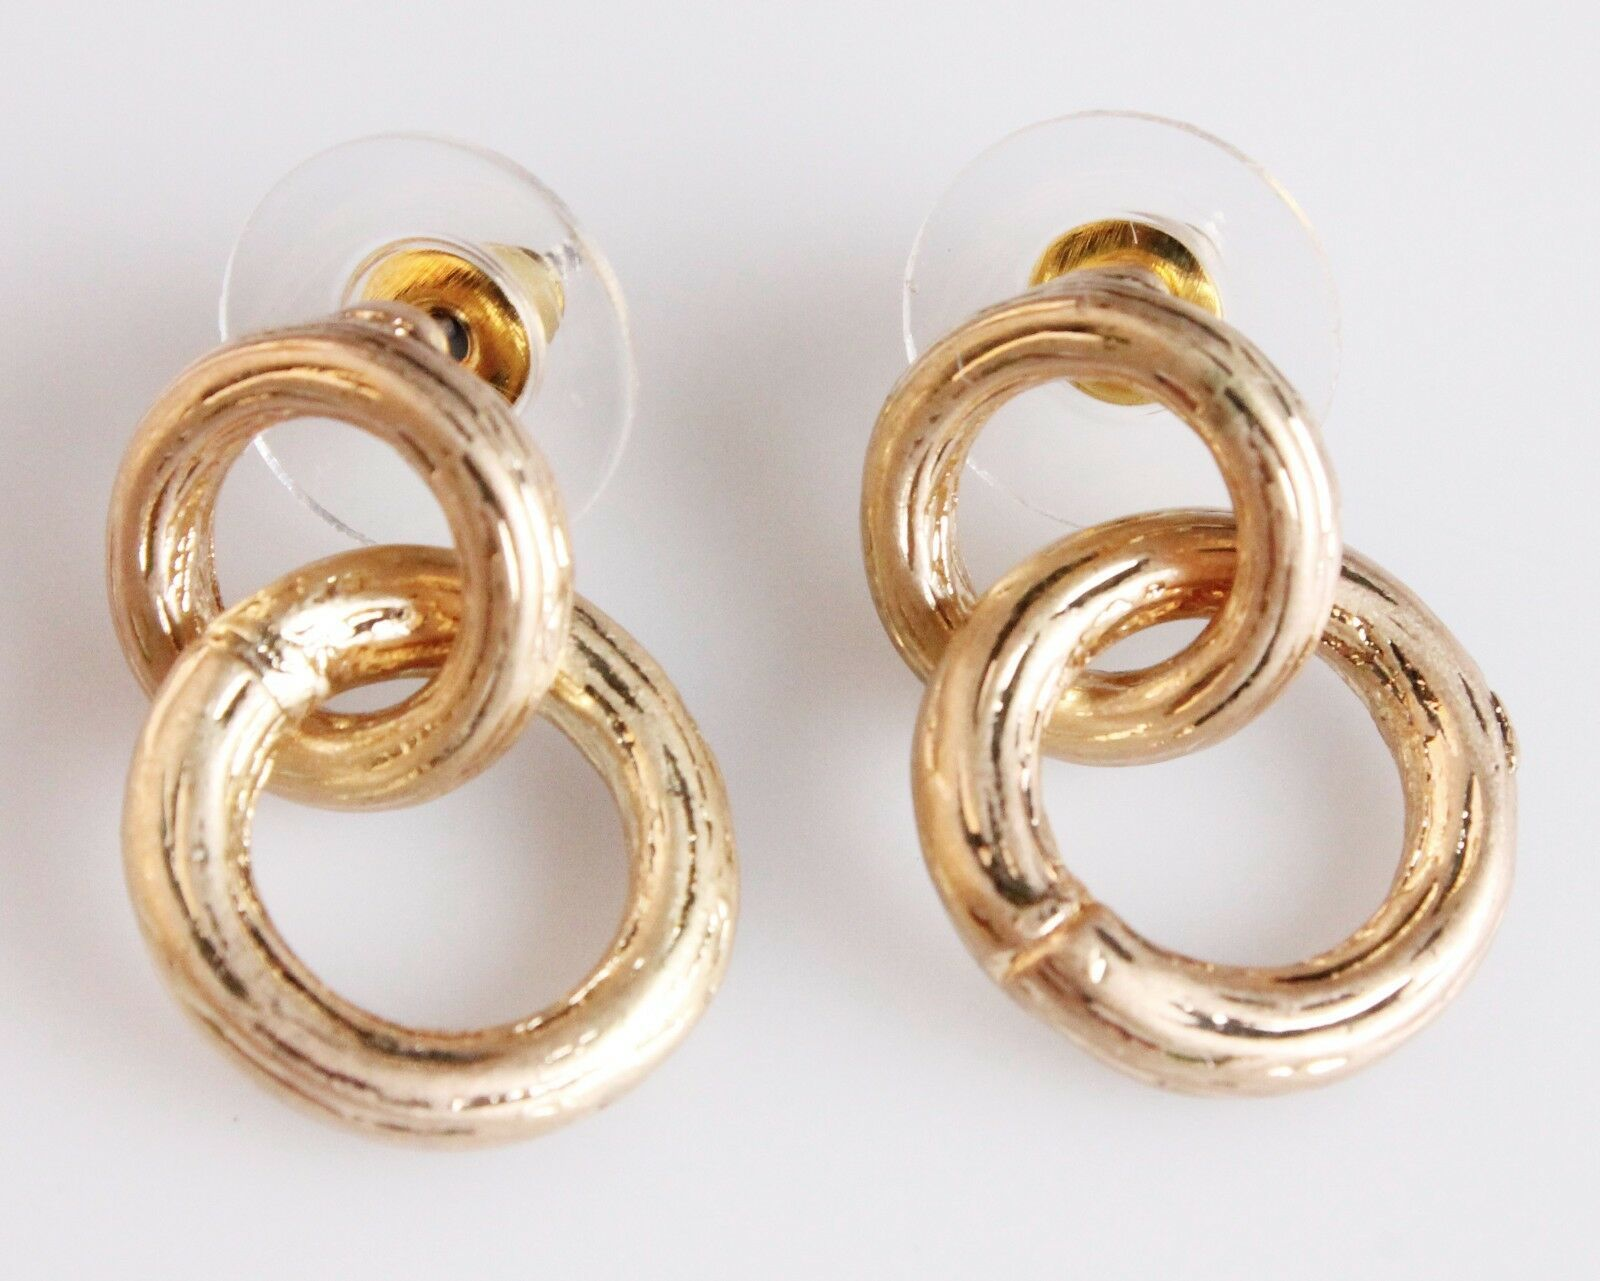 New Jardin Double Brushed Gold Plated Small Hoop Earrings NWT